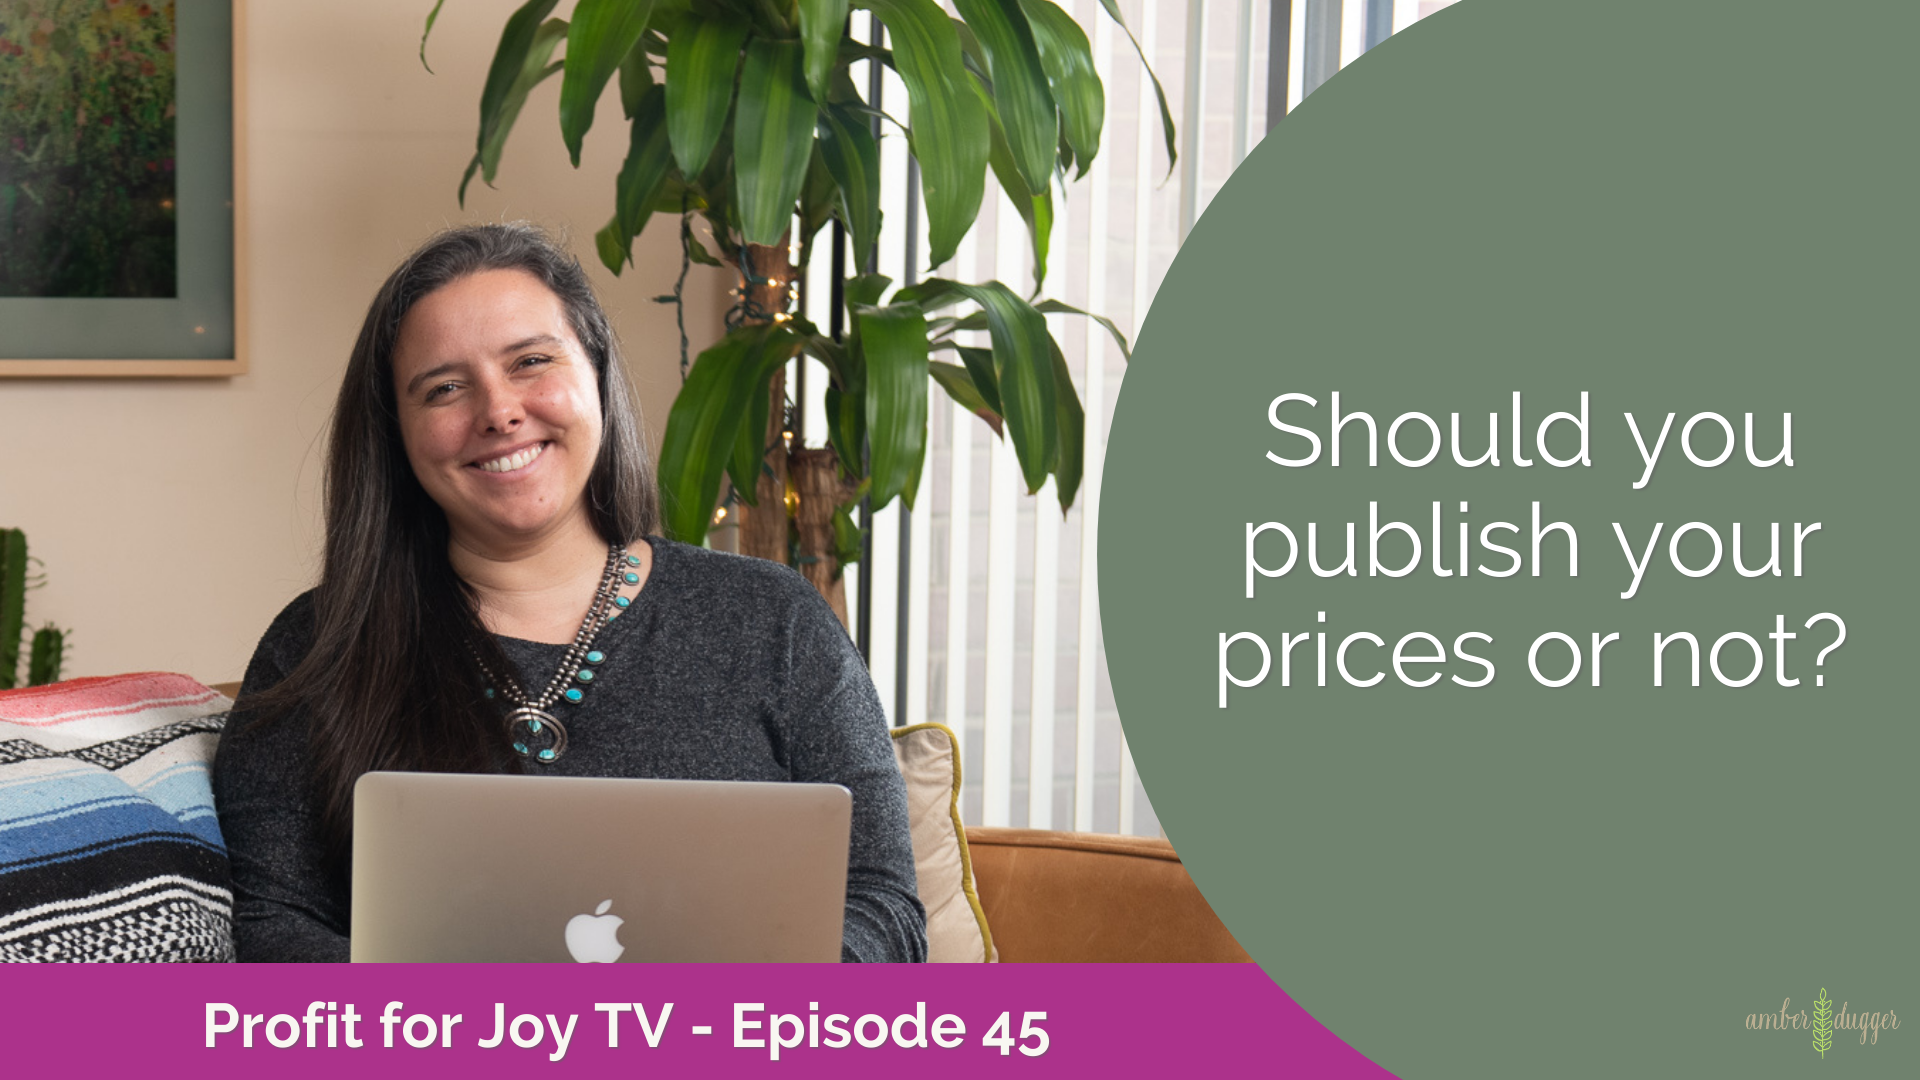 Should you publish your prices or not?